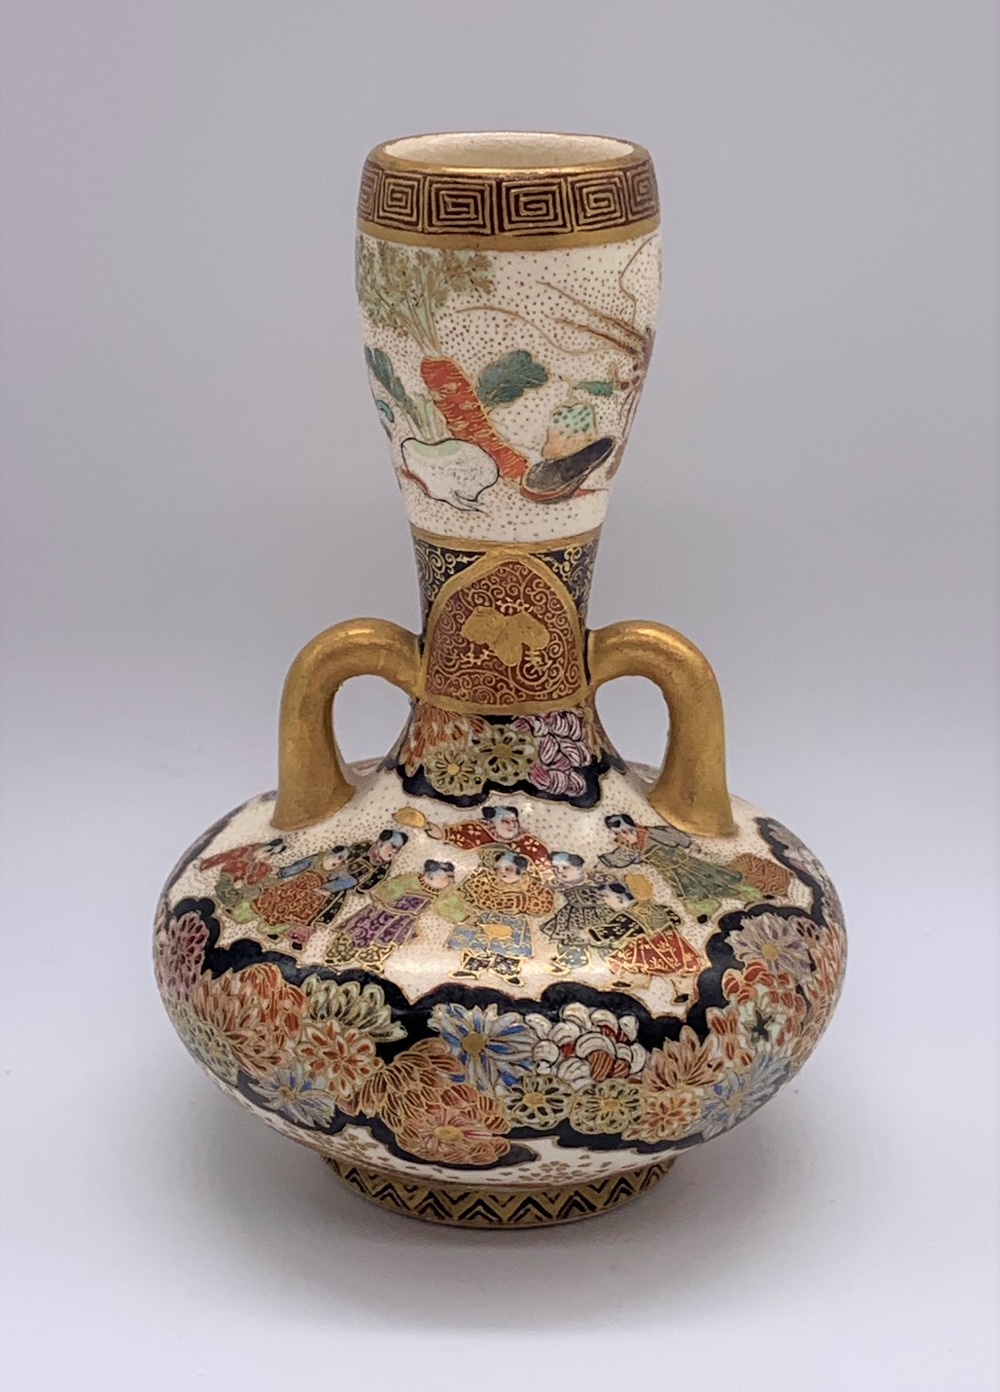 A Japanese Meiji period Satsuma twin handled vase of small proportions decorated with figures and - Image 7 of 7